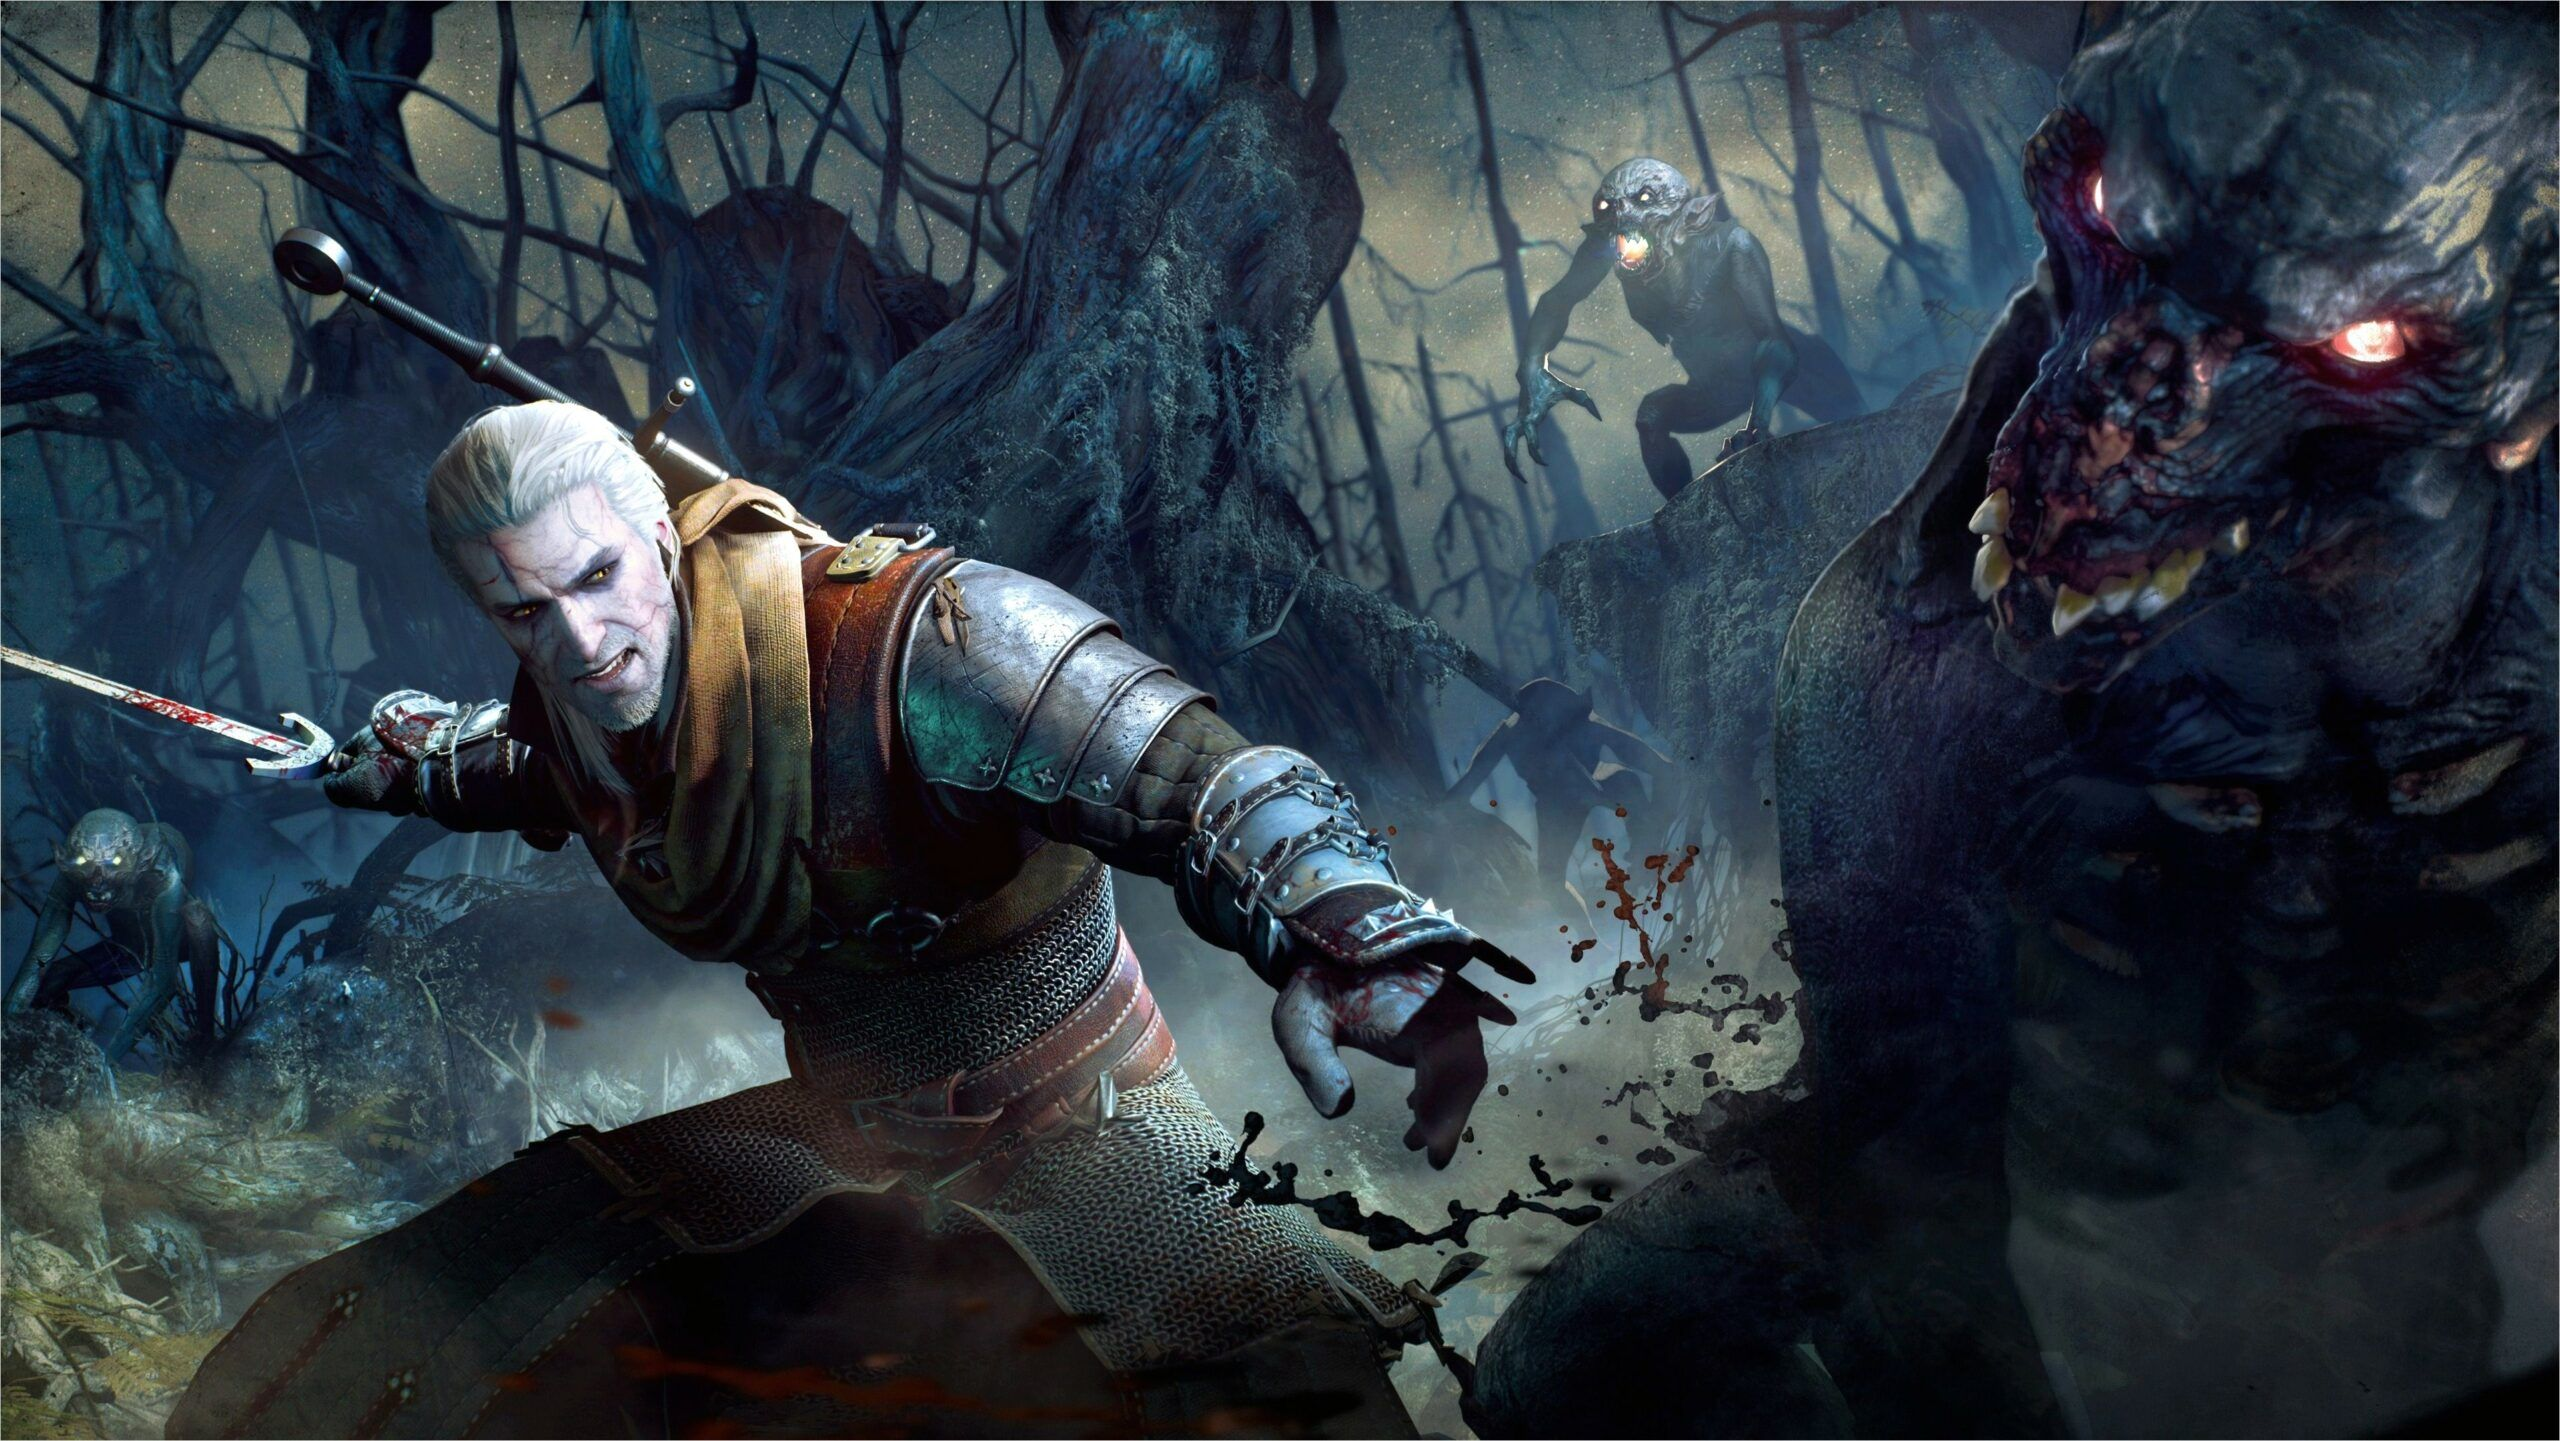 The Witcher Wallpaper 4k In 2020 The Witcher 3 The Witcher Pc